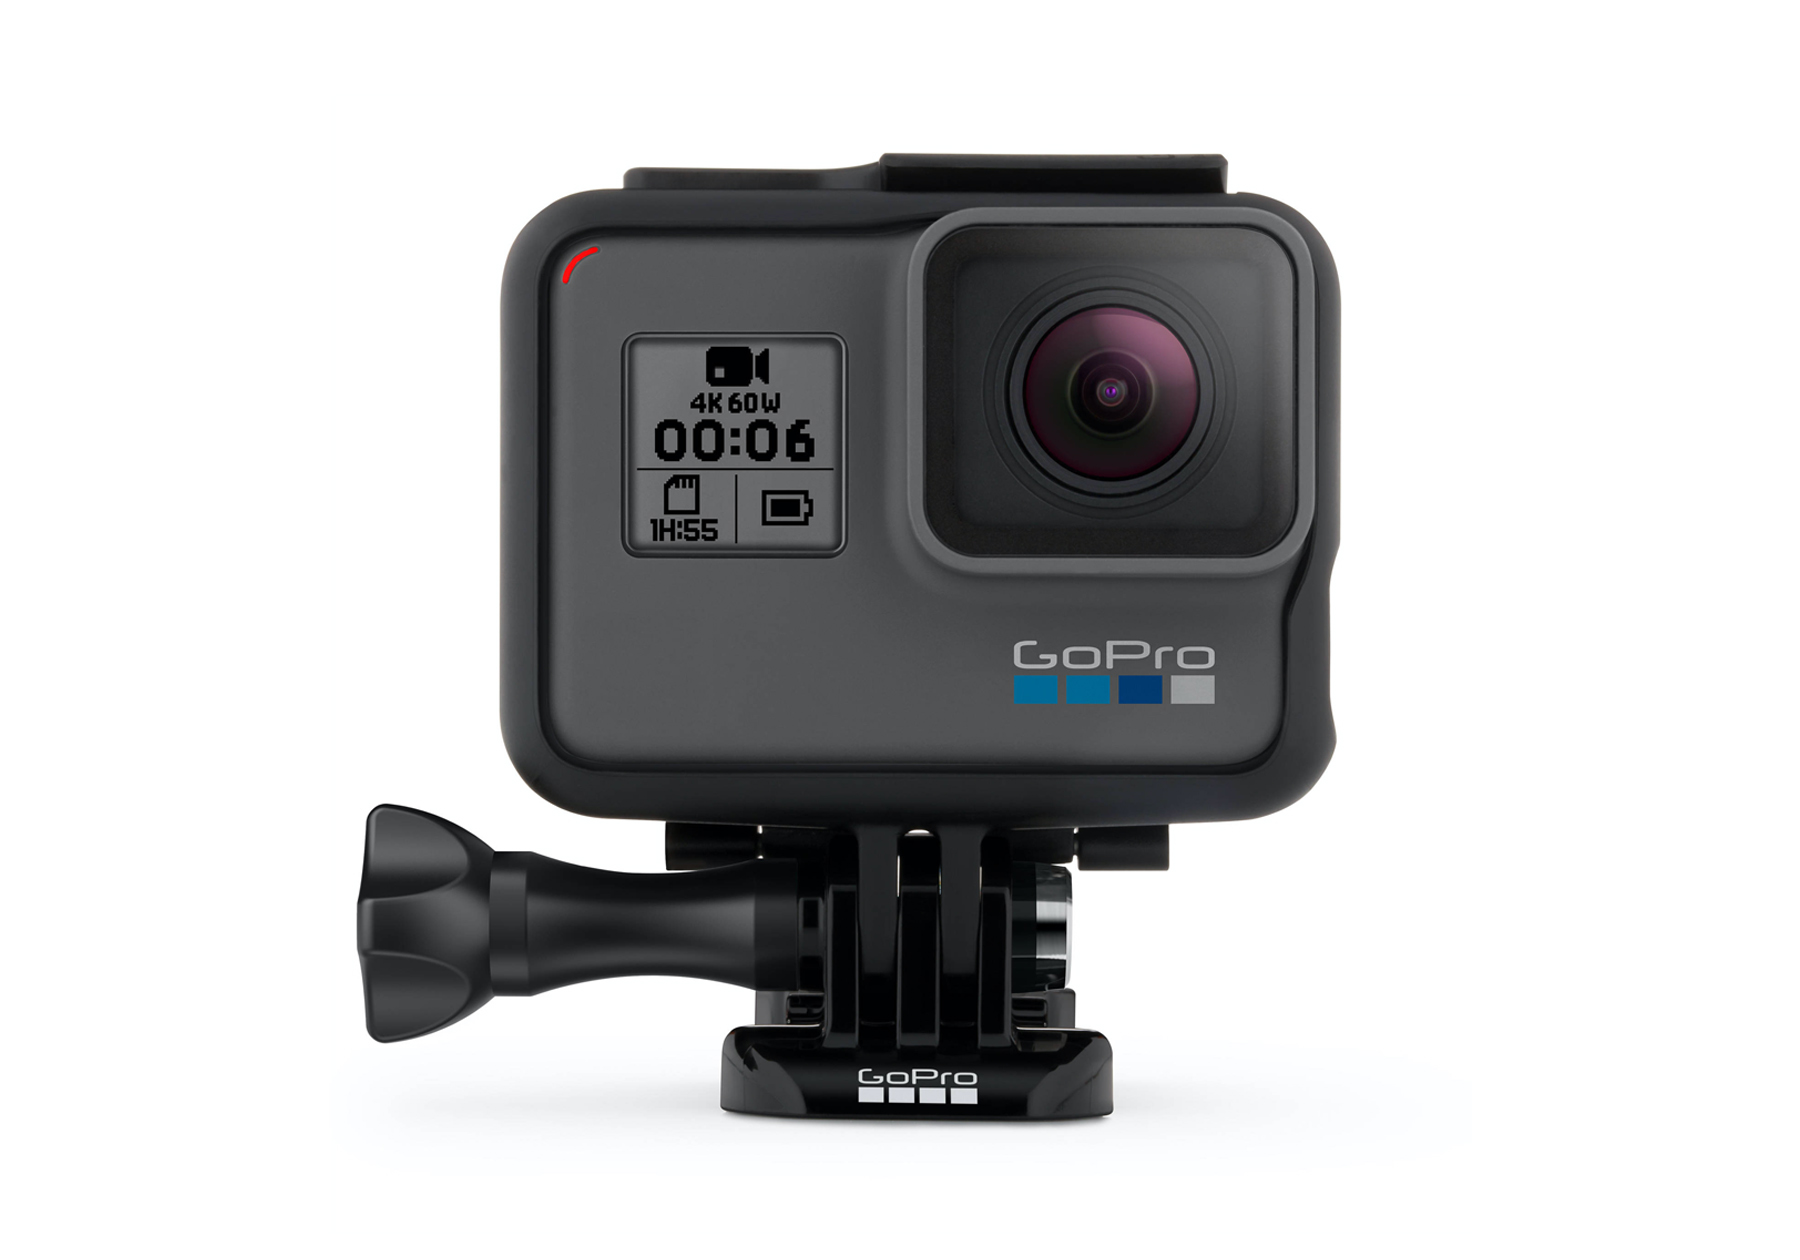 Hire GoPro Hero6 & professional TV cameras in Cardiff, Swansea, Newport, Carmarthenshire, Pembrokeshire, South & West Wales